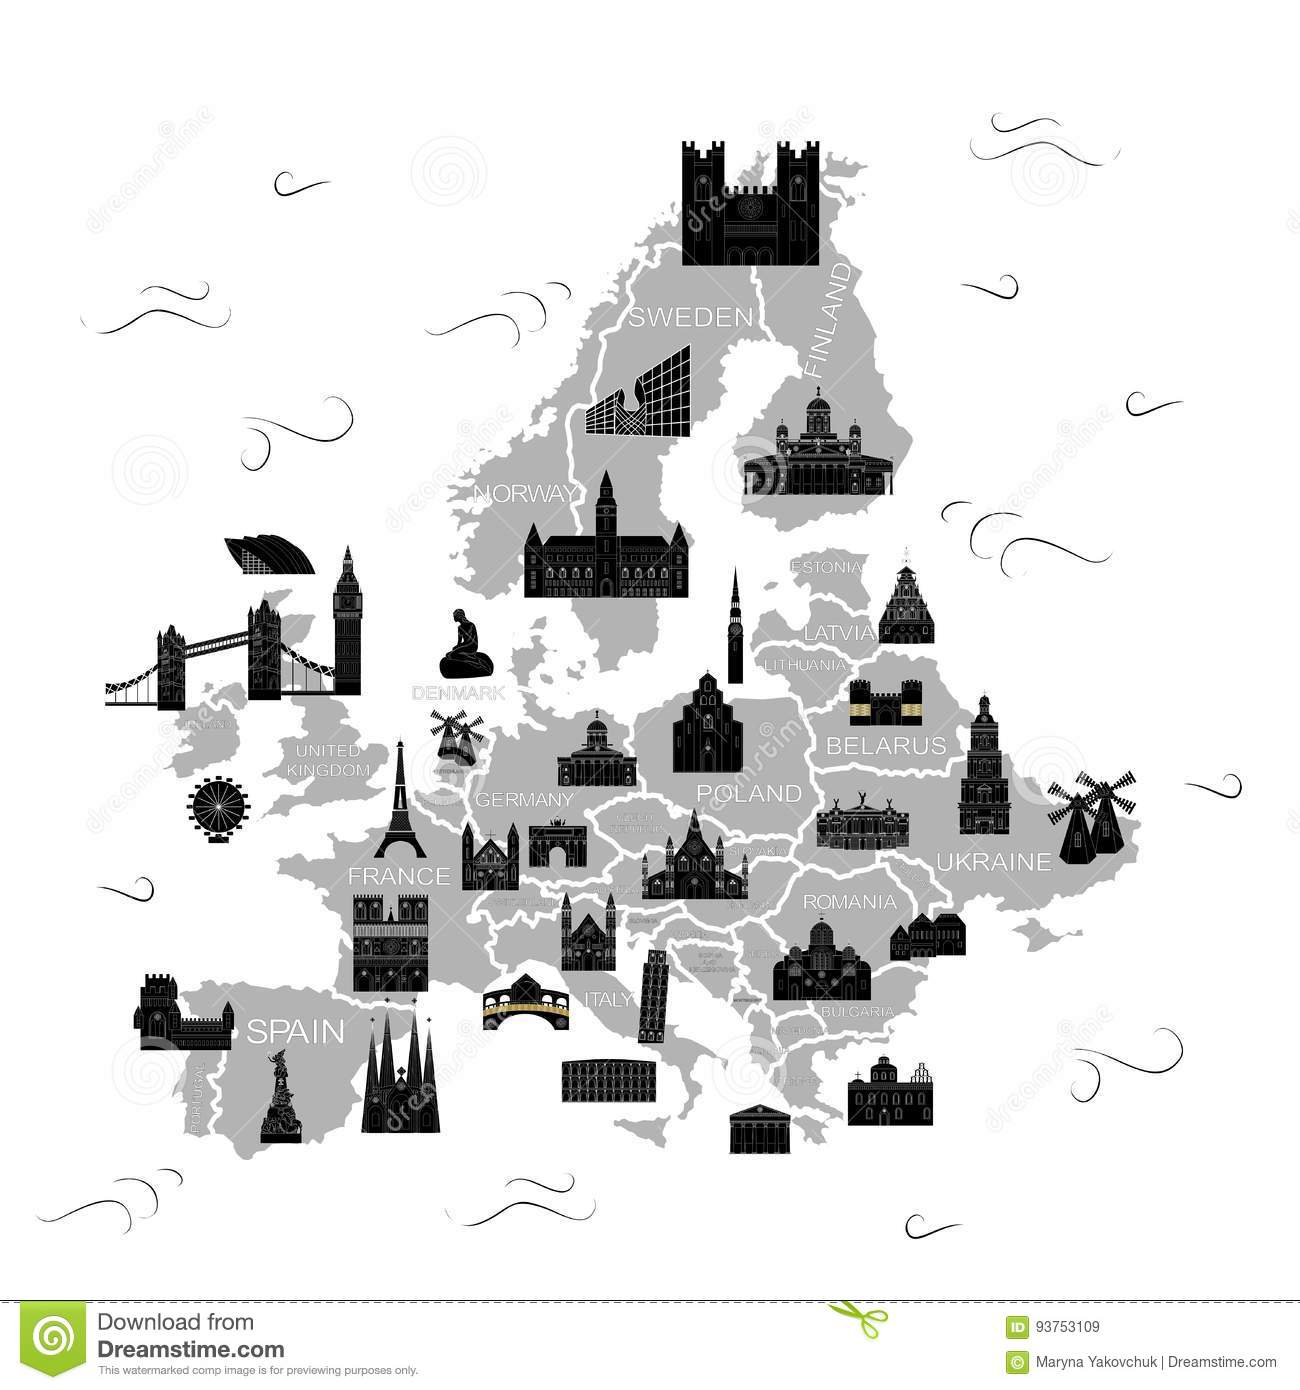 The Europe Map Black Stock Vector Illustration Of Latvia 93753109